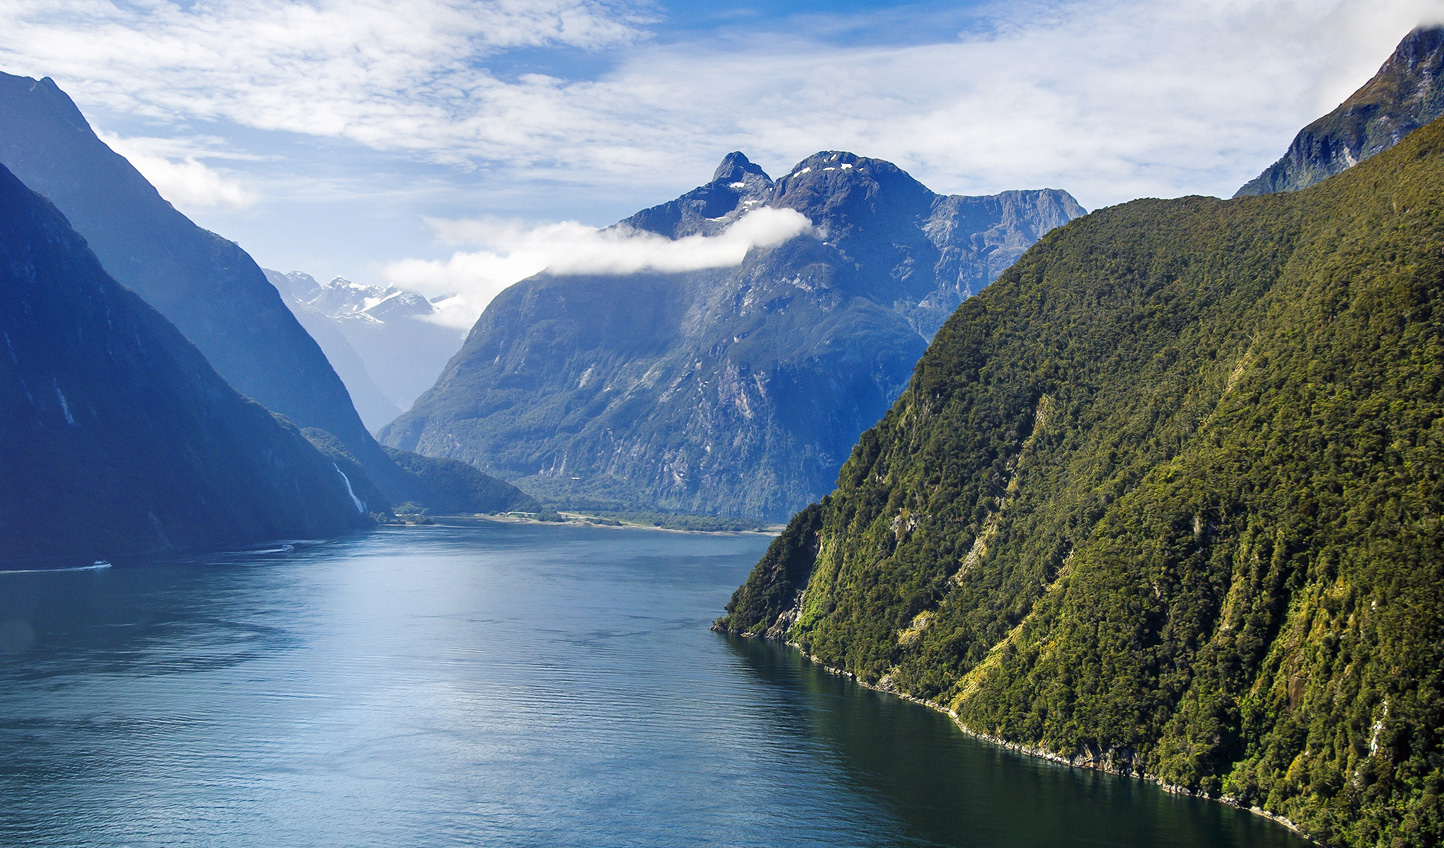 Take to the skies in a helicopter flight over Milford Sound